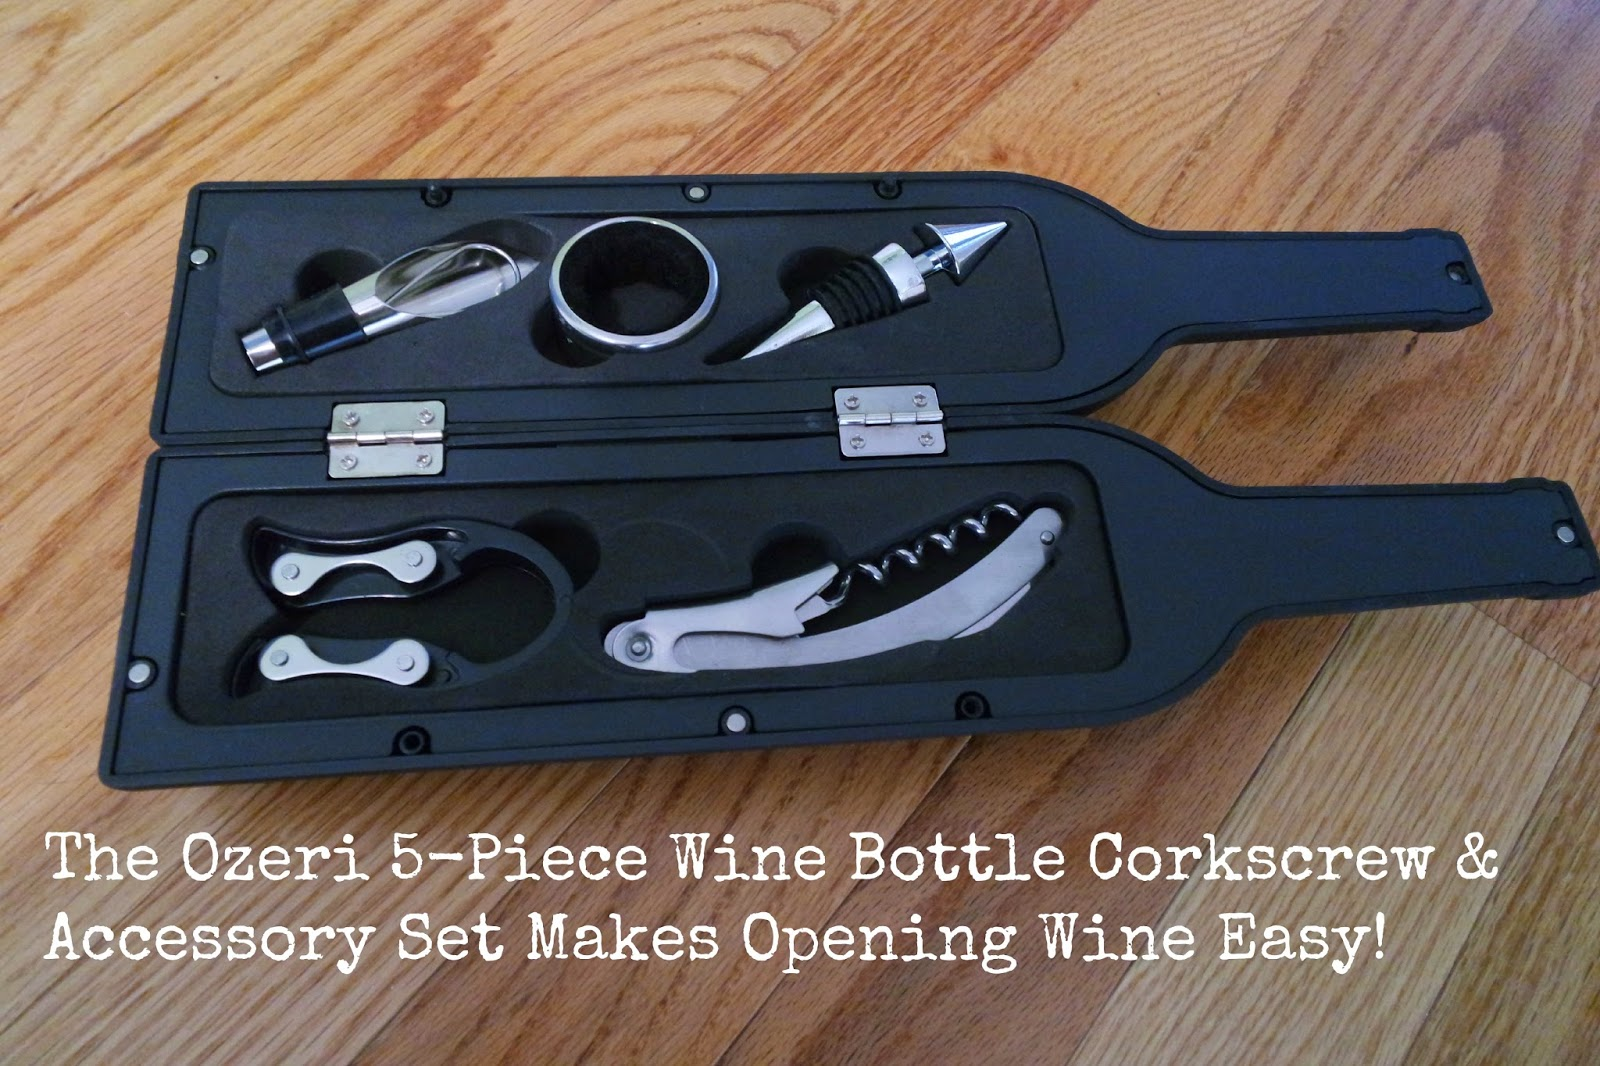 Ozeri 5-Piece Wine Bottle Corkscrew & Accessory Set